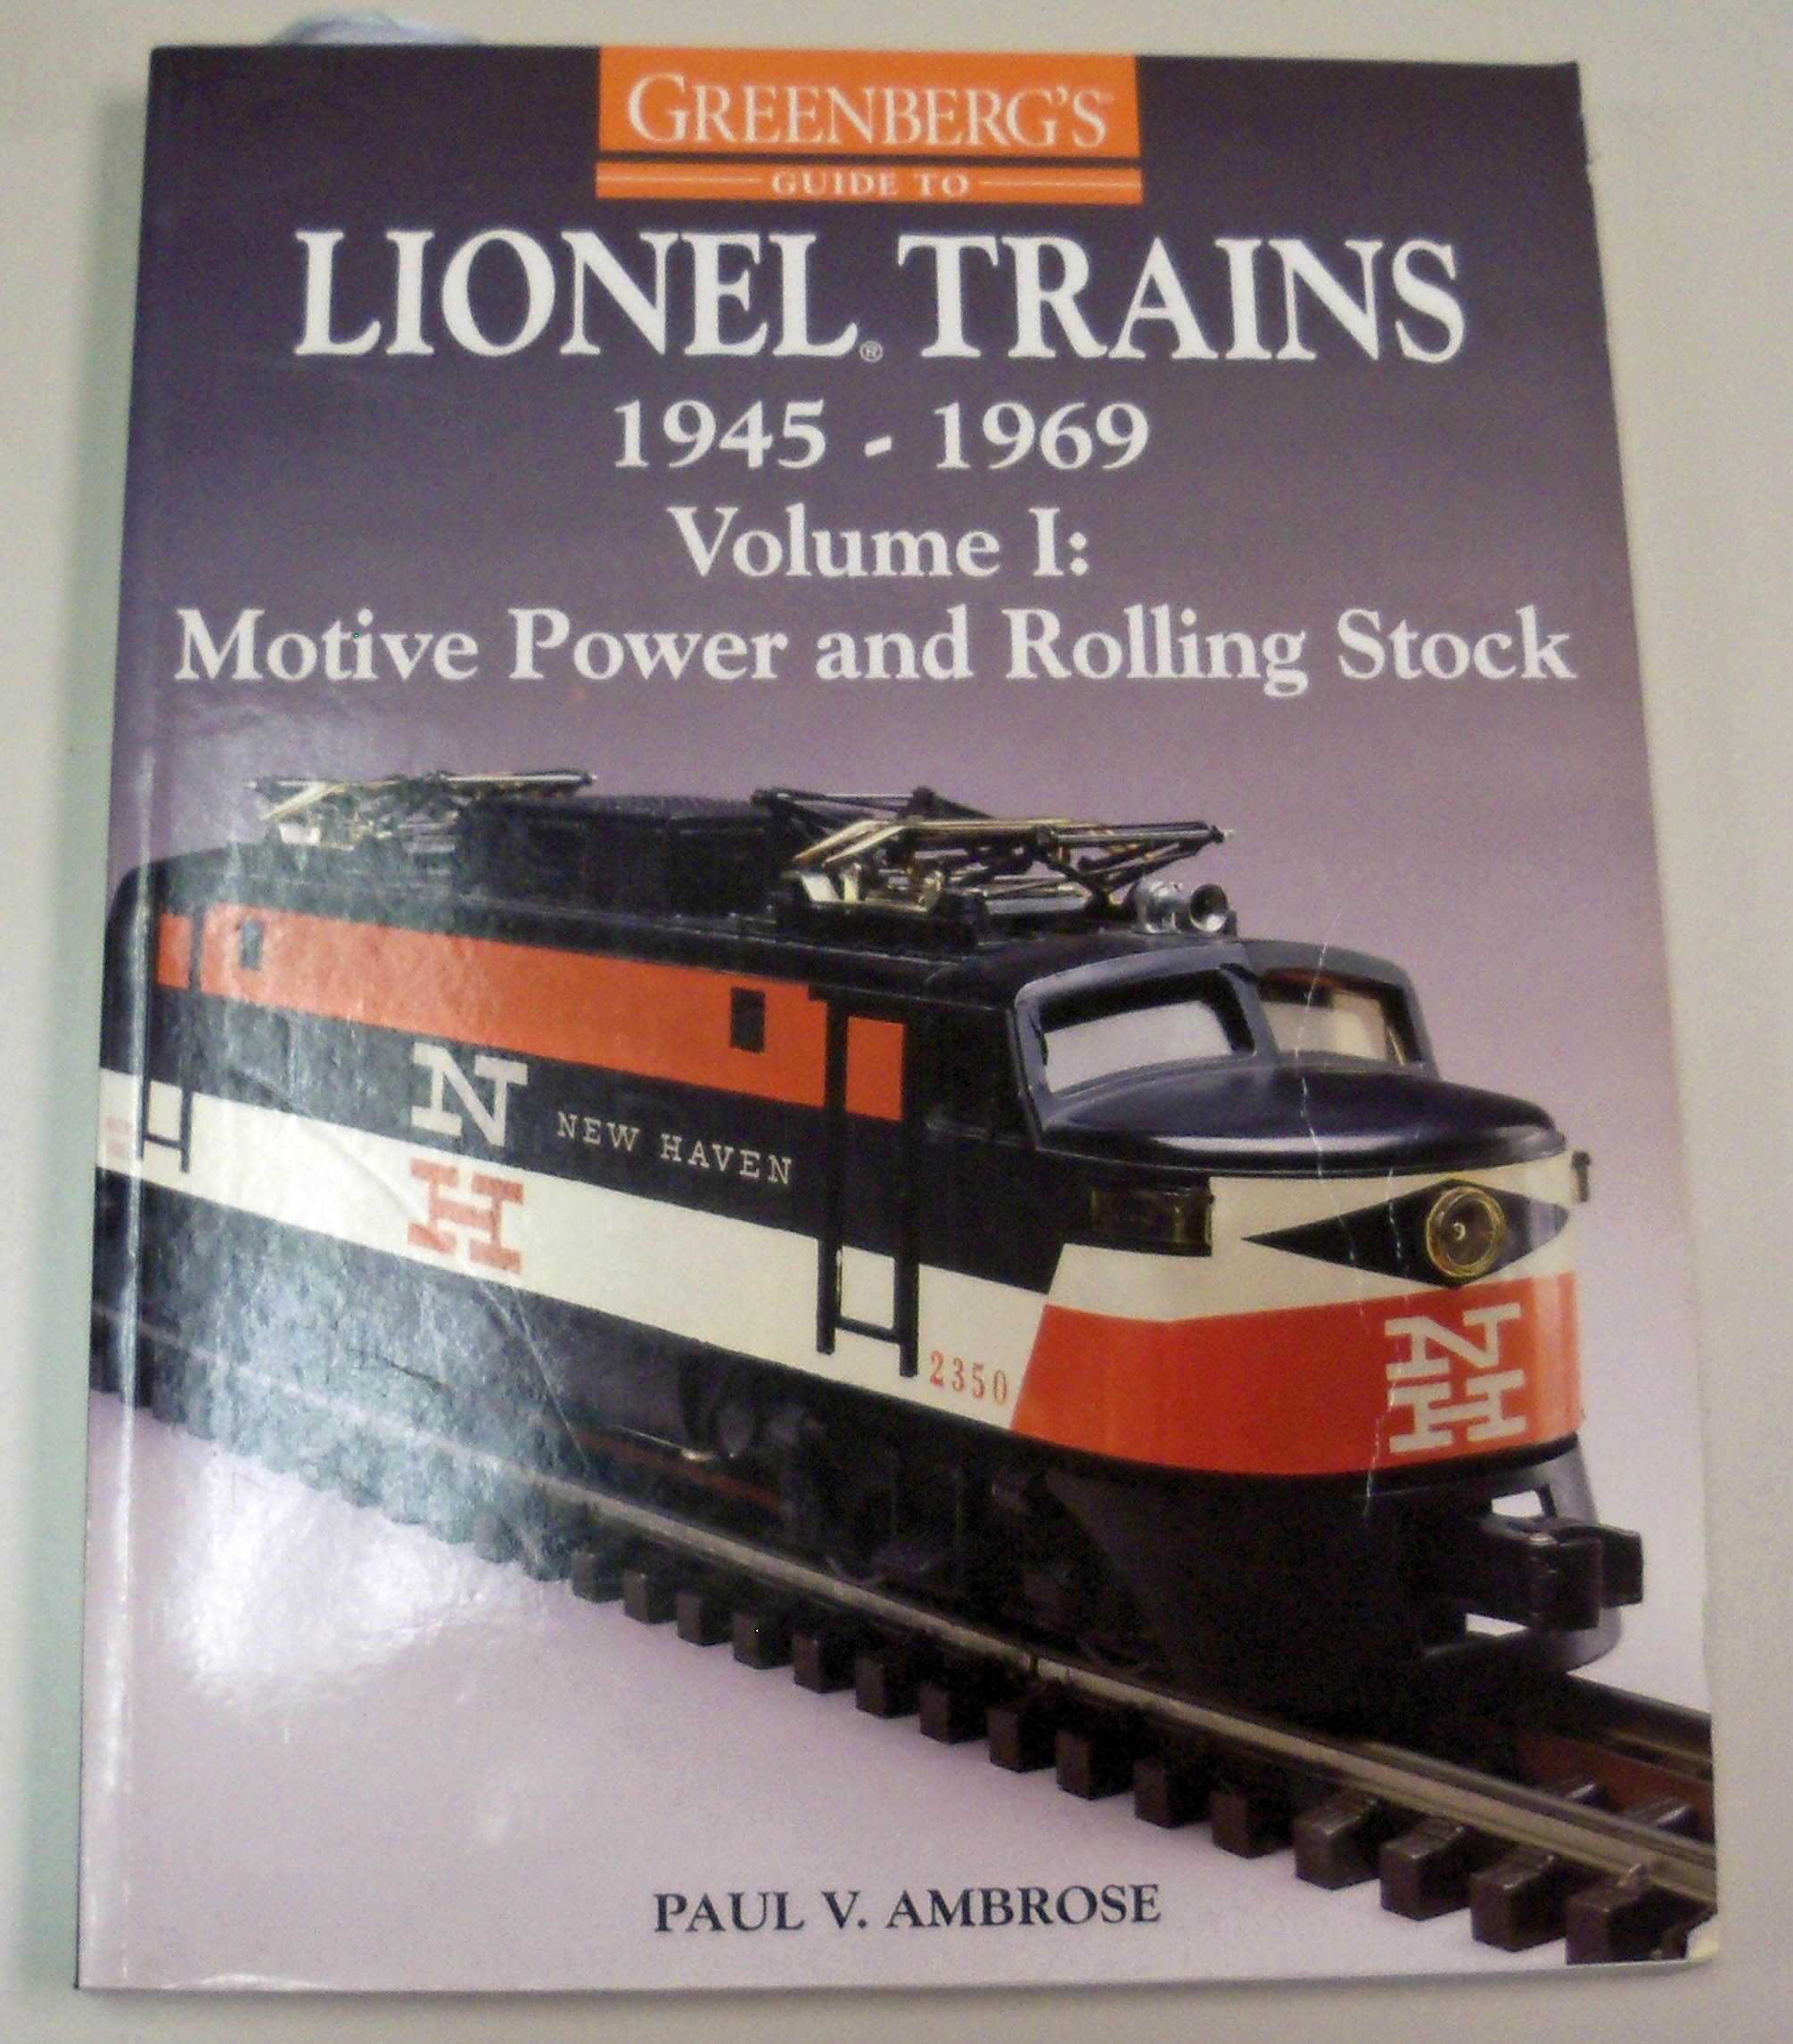 Out Of Print Part 1 Postwar Lionel Reference Books Classic Toy Wiring Diagrams Greenbergs Guide To Trains 1945 1969 Vol Motive Power Rolling Stock 9th Edition 1996 By Paul Ambrose